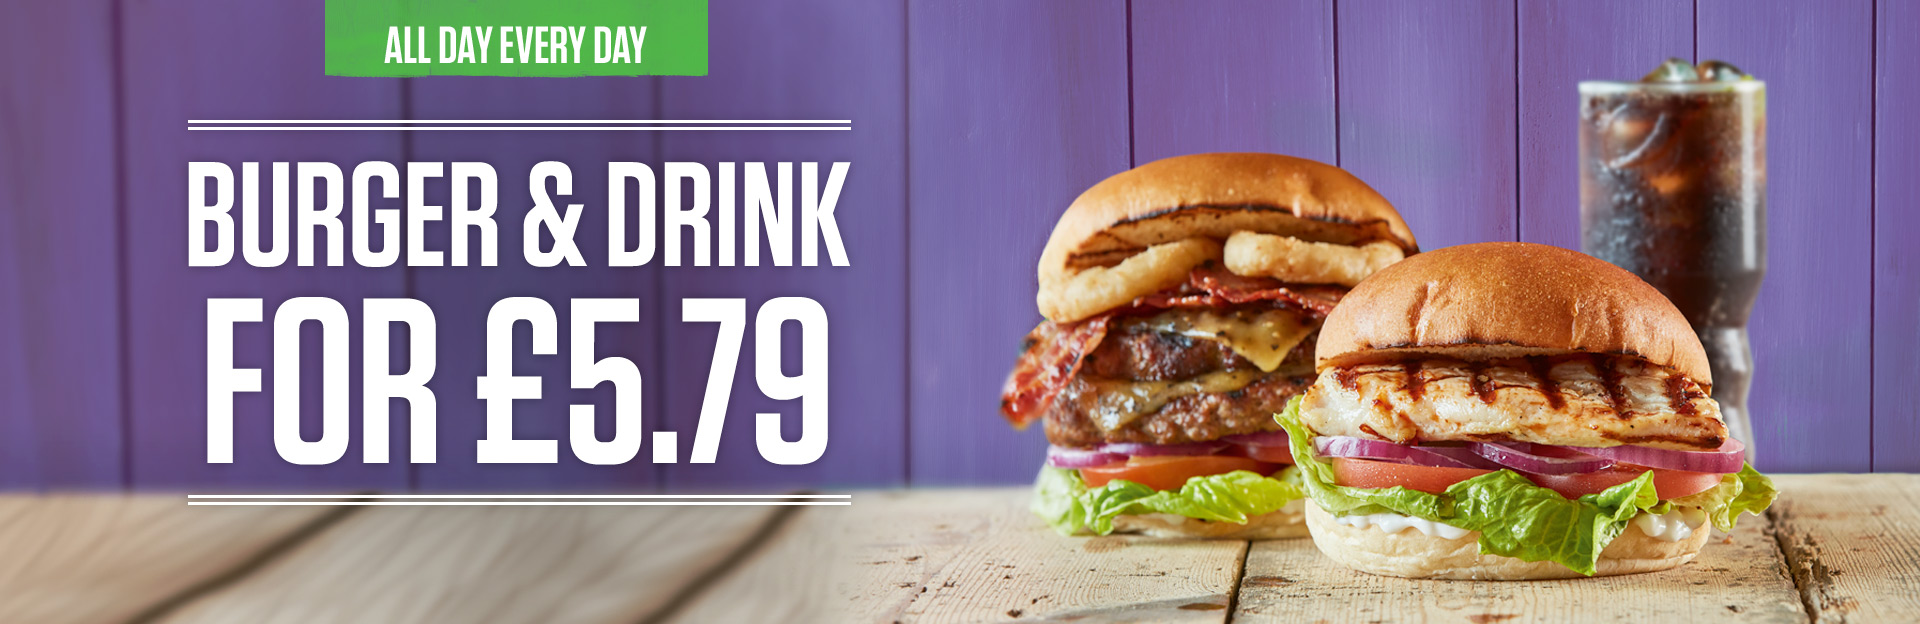 Burger and Drink Deal at The Bryncoch Inn